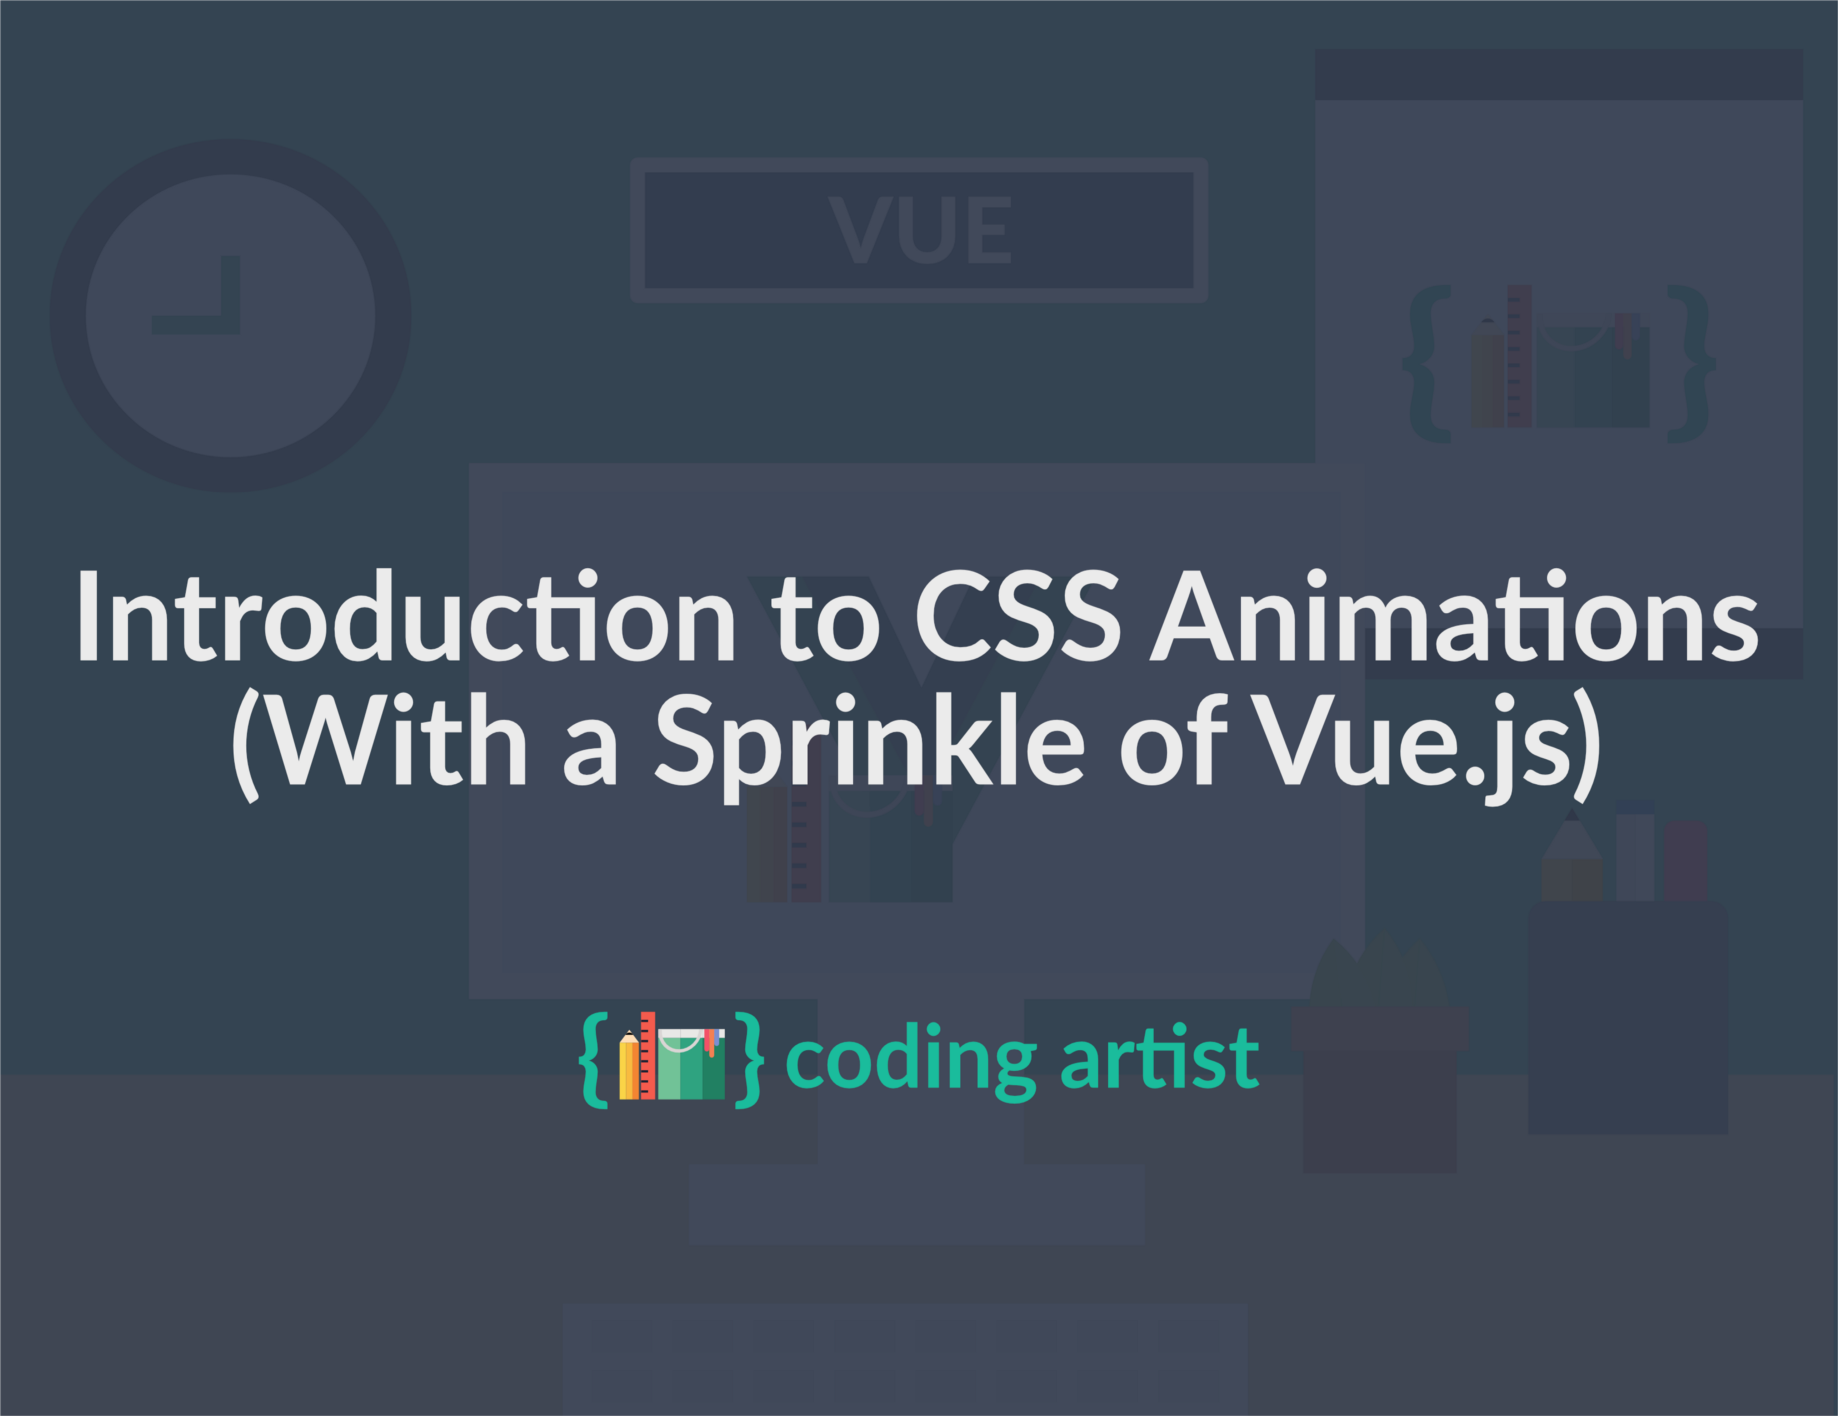 Introduction to CSS Animations (With a Sprinkle of Vue js)